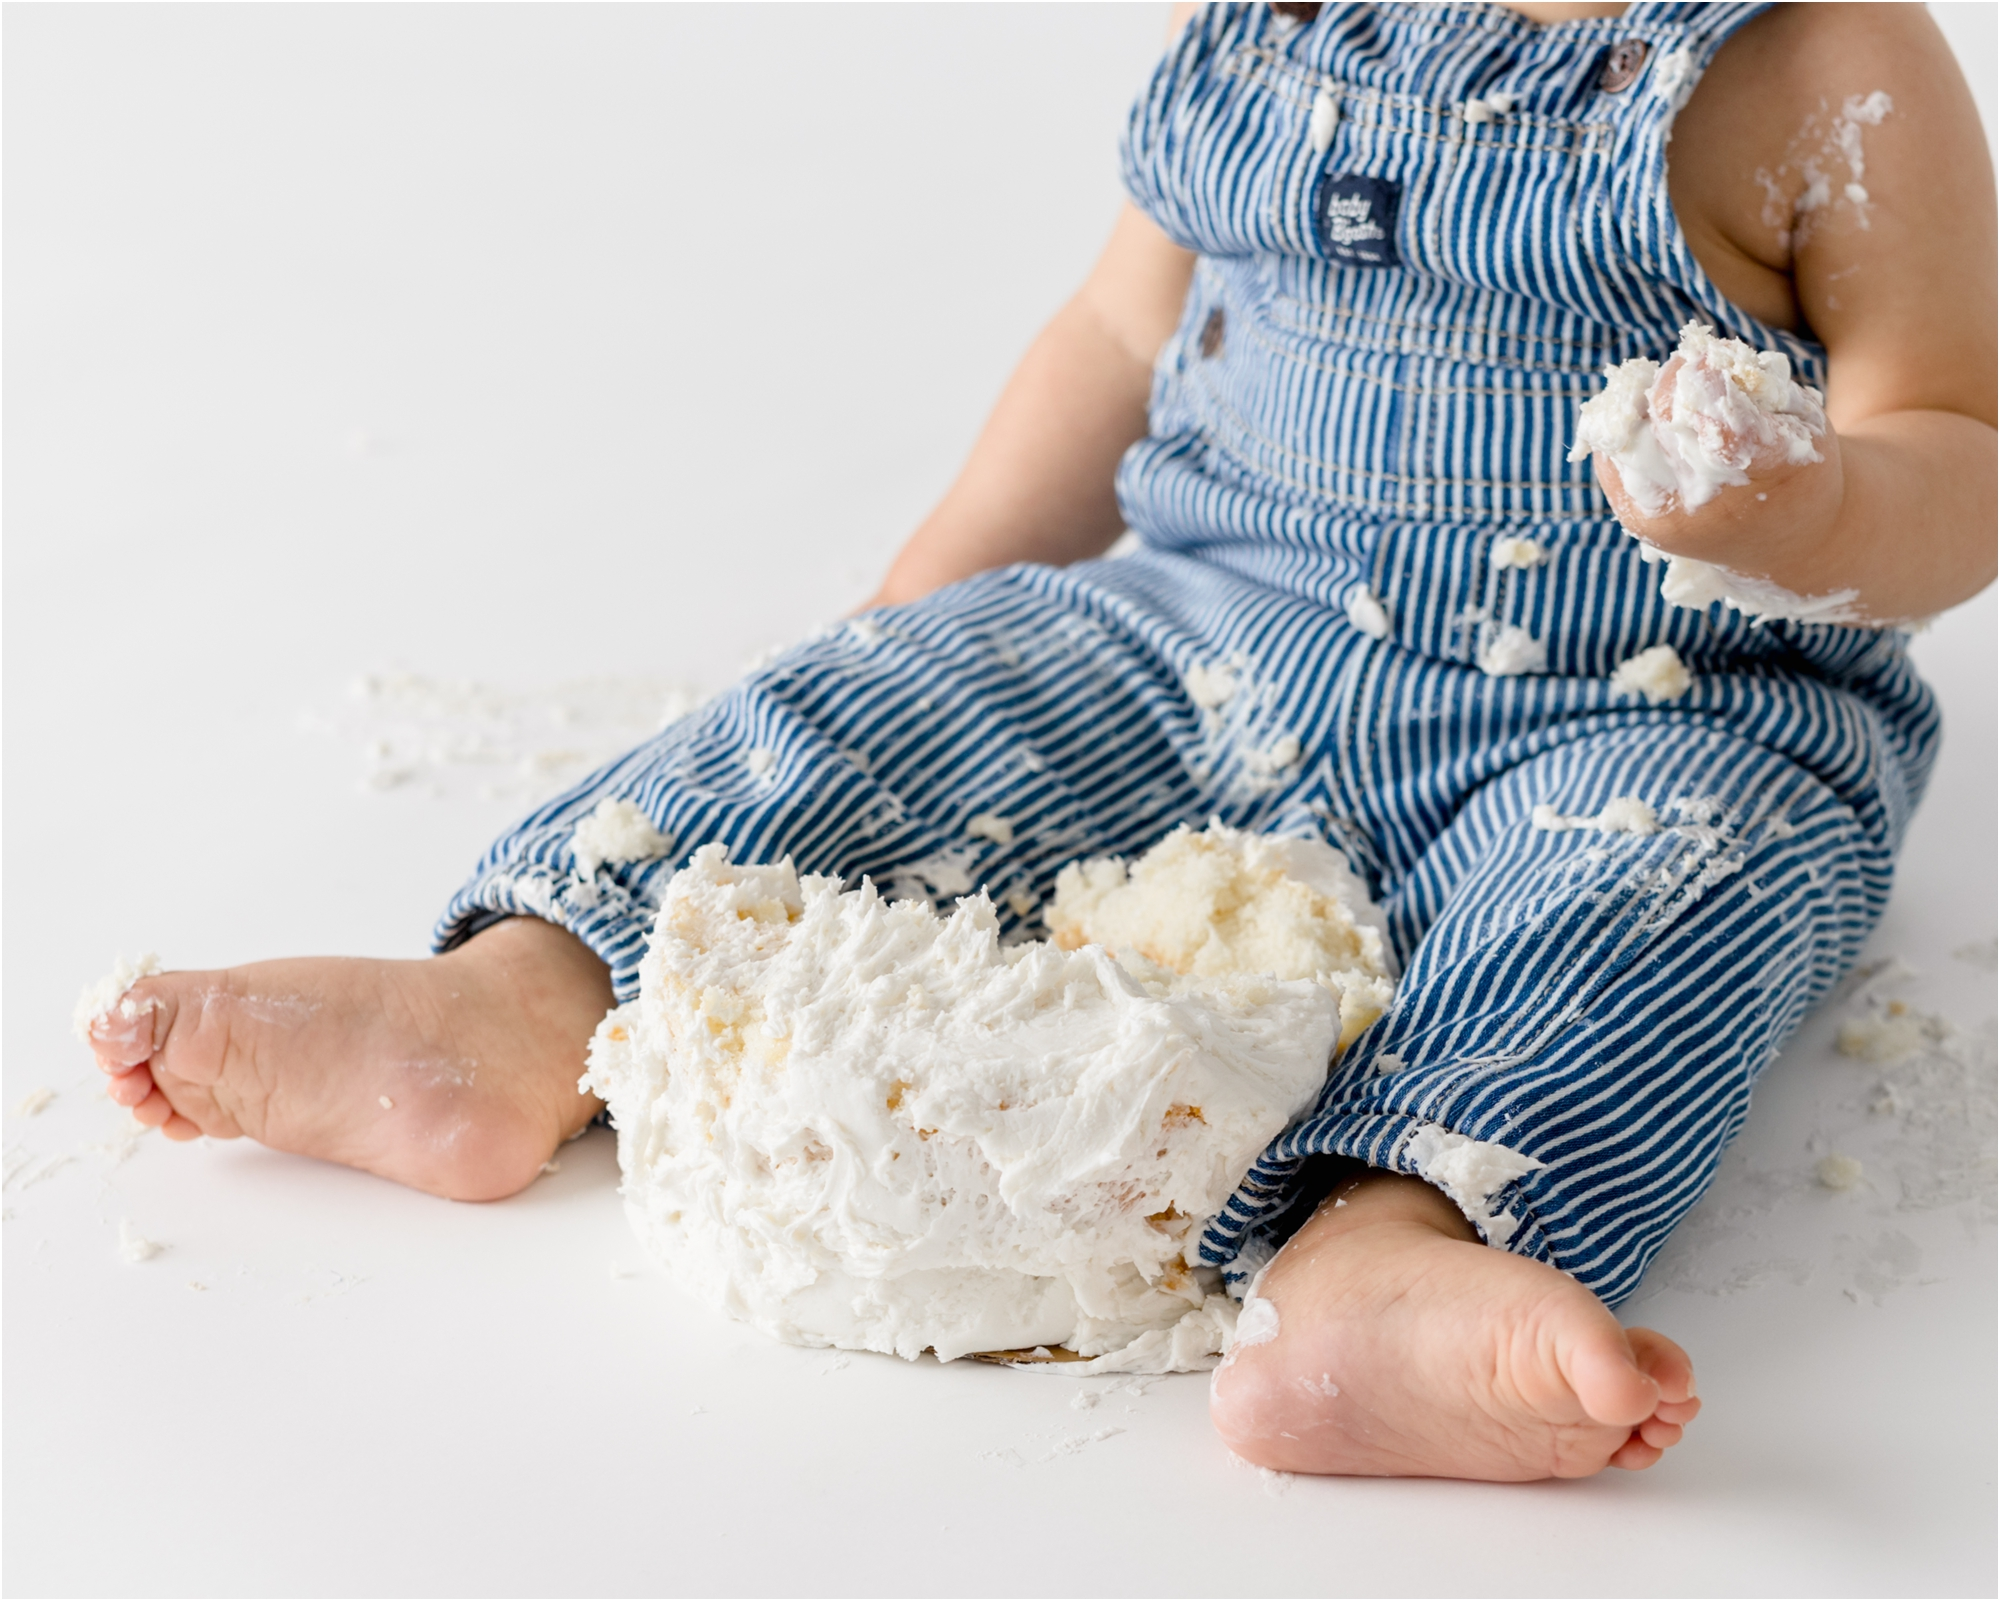 Baby boy's feet and hands covered in frosting during cake smash session in Houston. Photo by Lifetime of Clicks Photography.